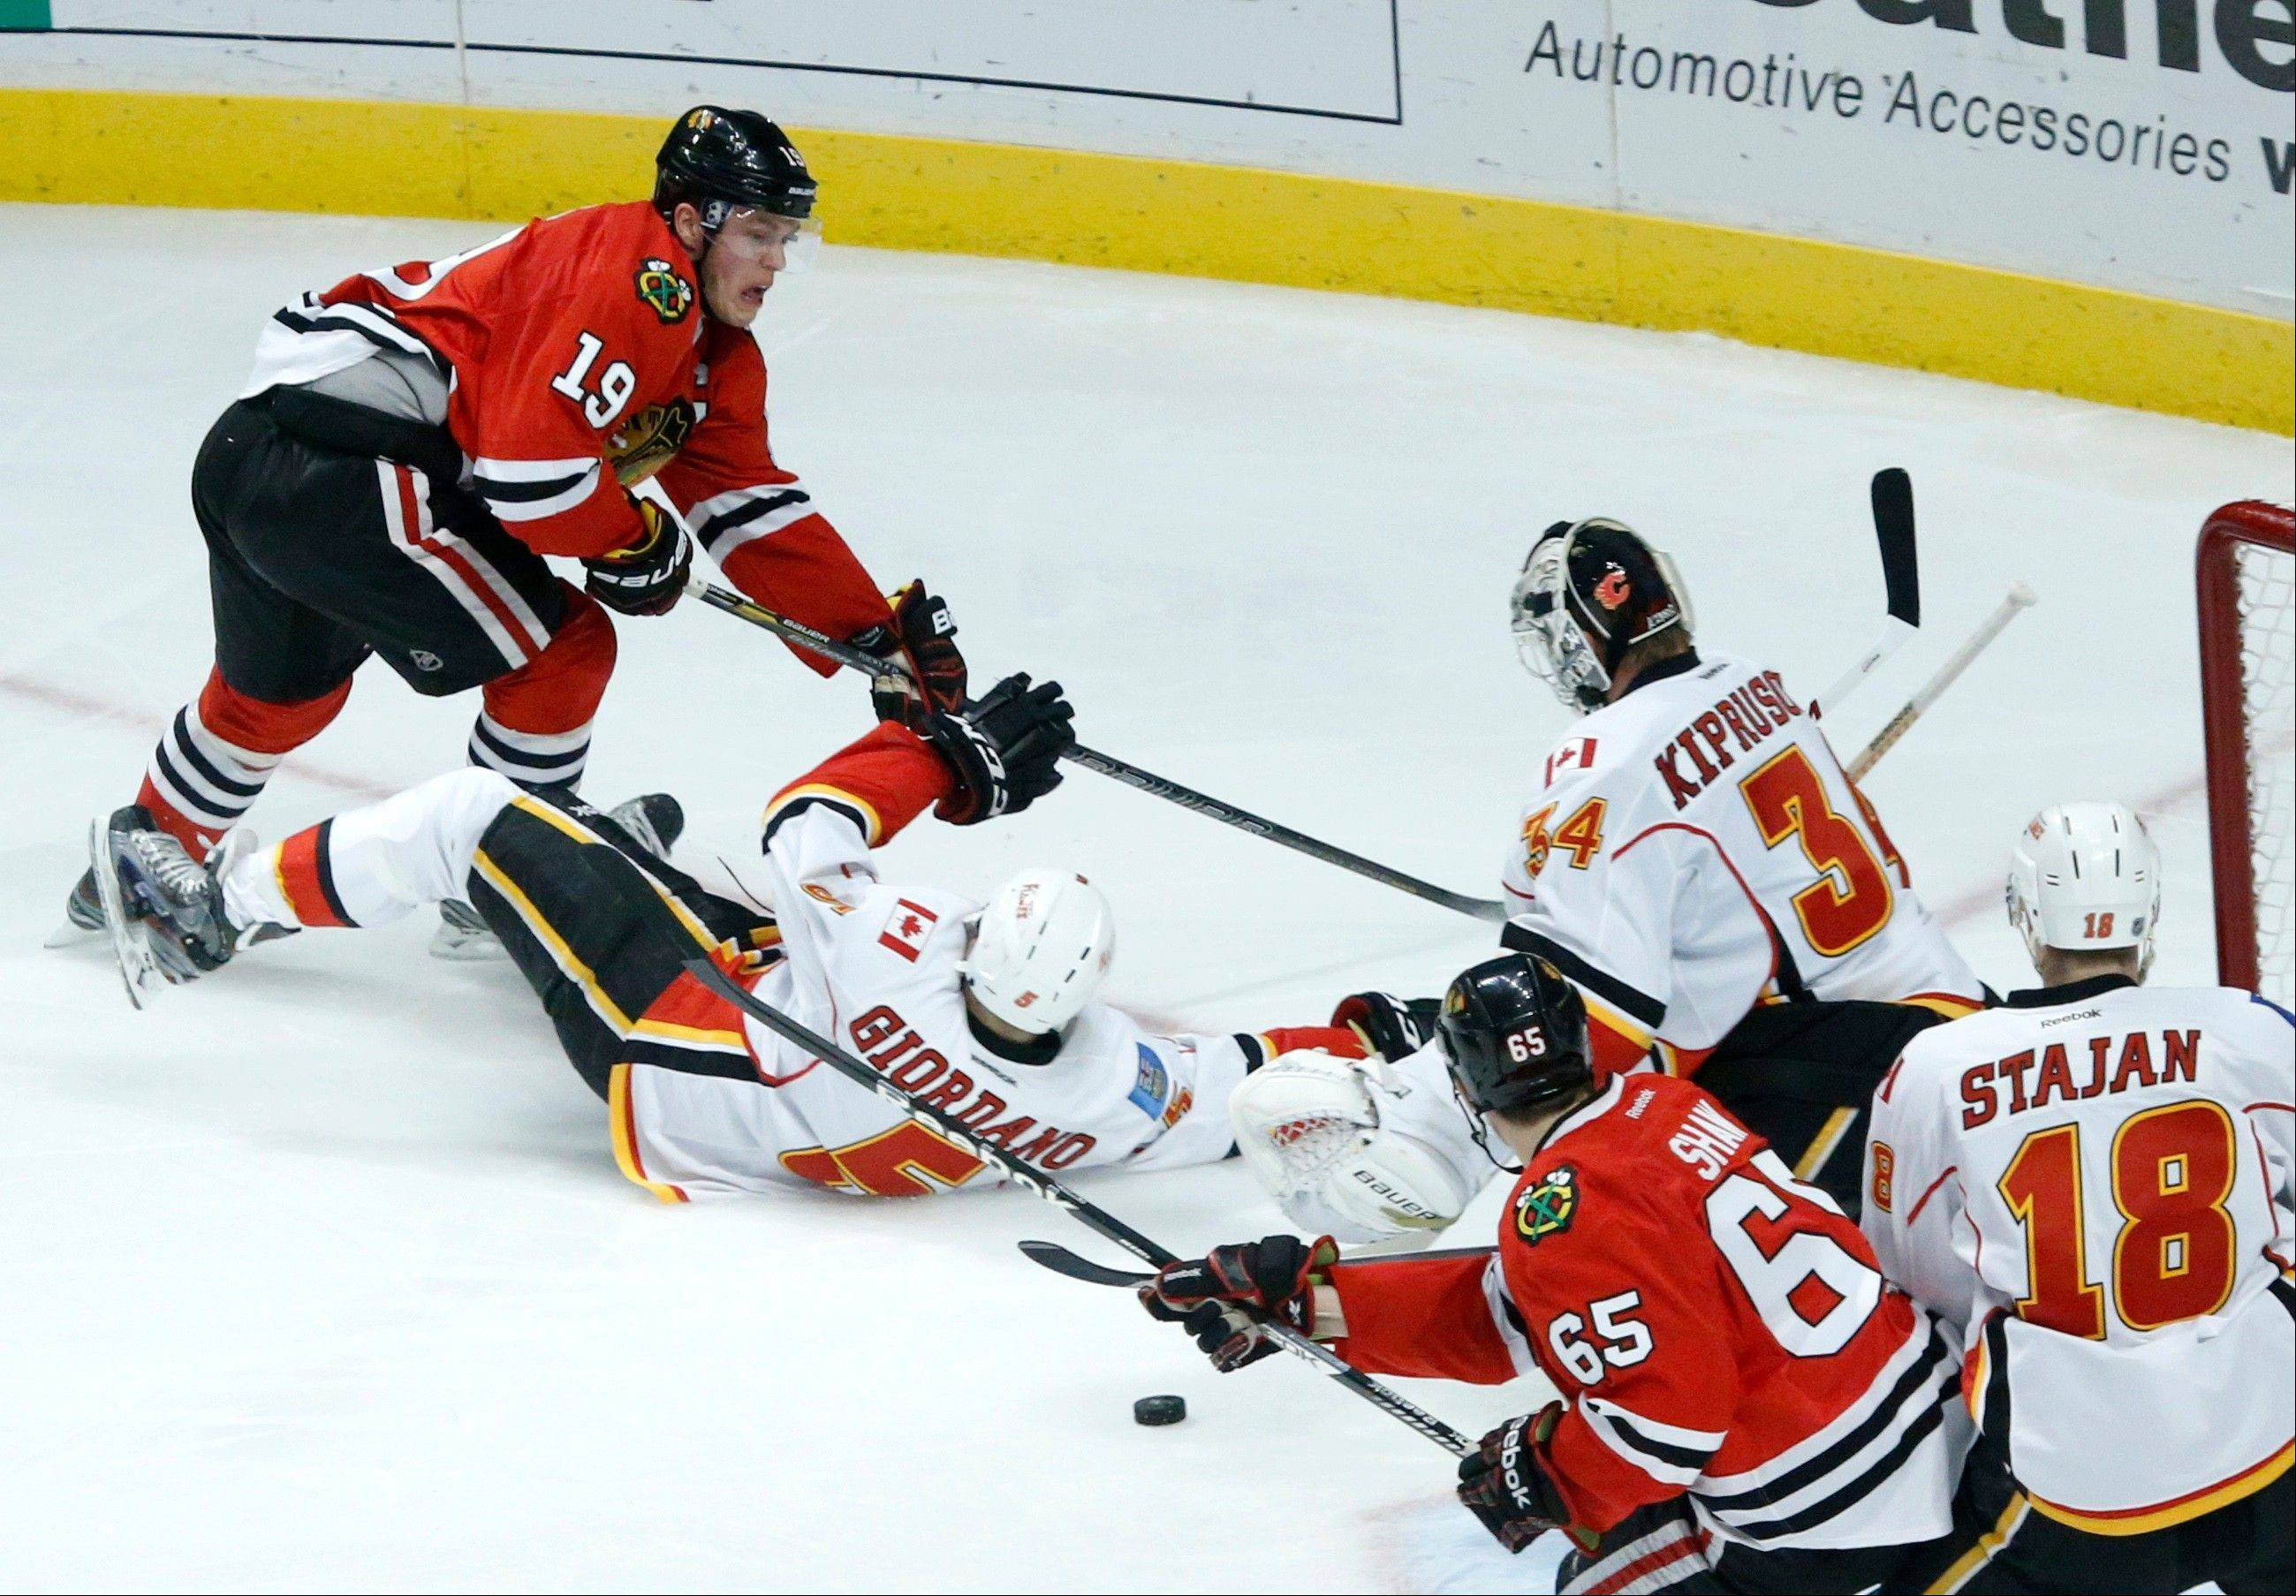 Calgary Flames goalie Miikka Kiprusoff gave up a pair of goals by the Blackhawks Tuesday, but the Hawks failed to convert on five power play chances.